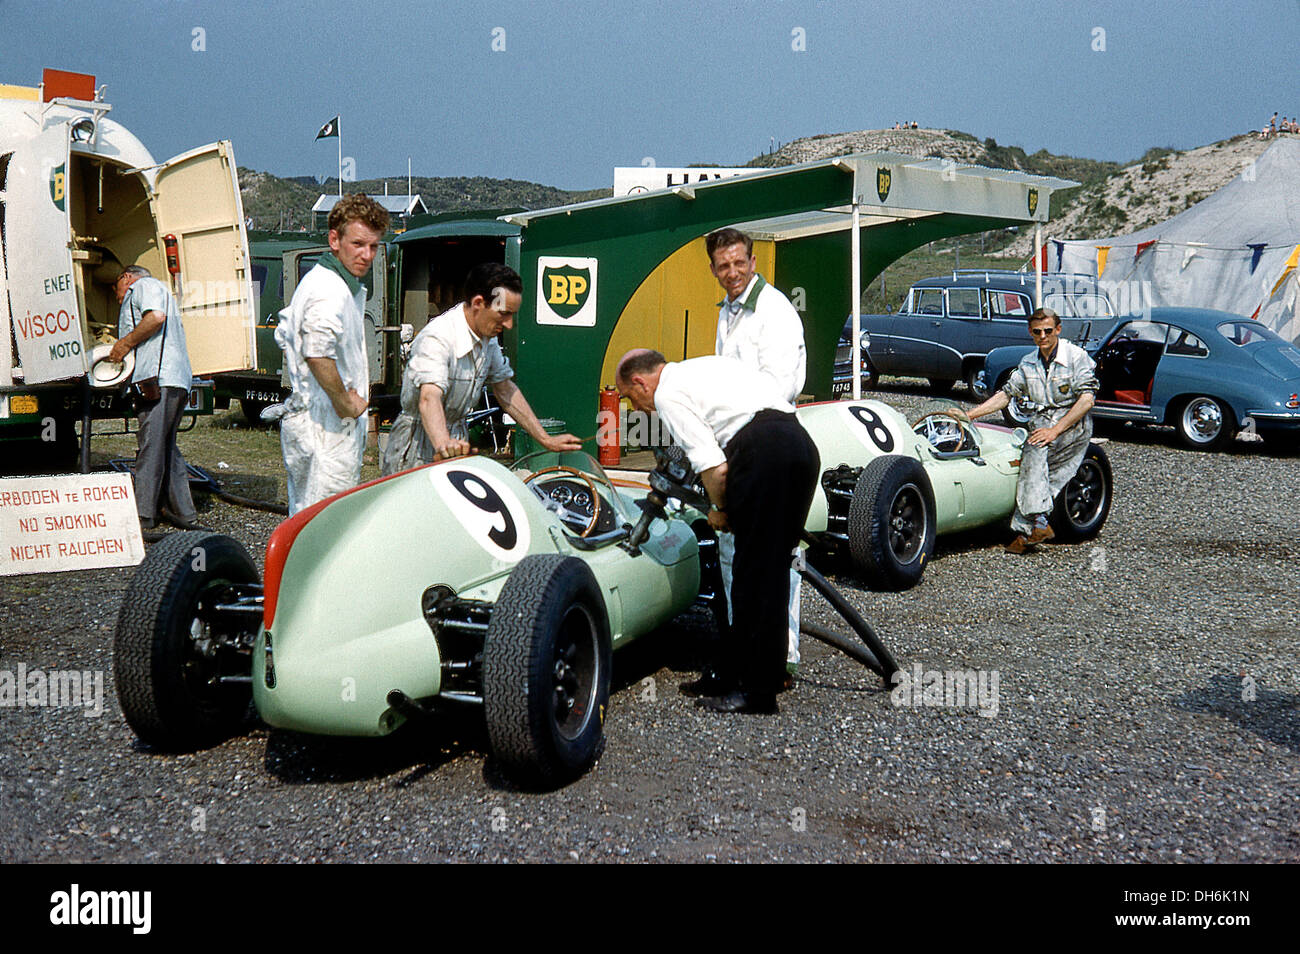 yeoman credit racing team in the paddock at the dutch grand prix stock photo 62226913 alamy. Black Bedroom Furniture Sets. Home Design Ideas